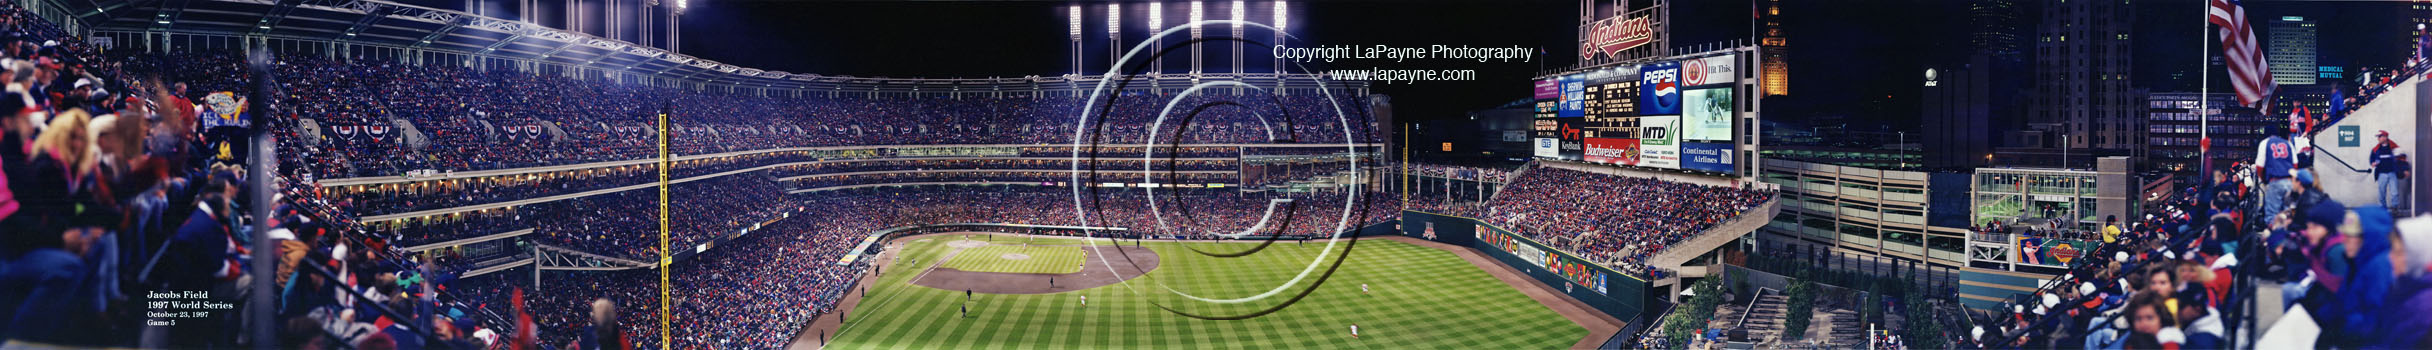 Jacobs Field World Series Panorama 1997 | Game